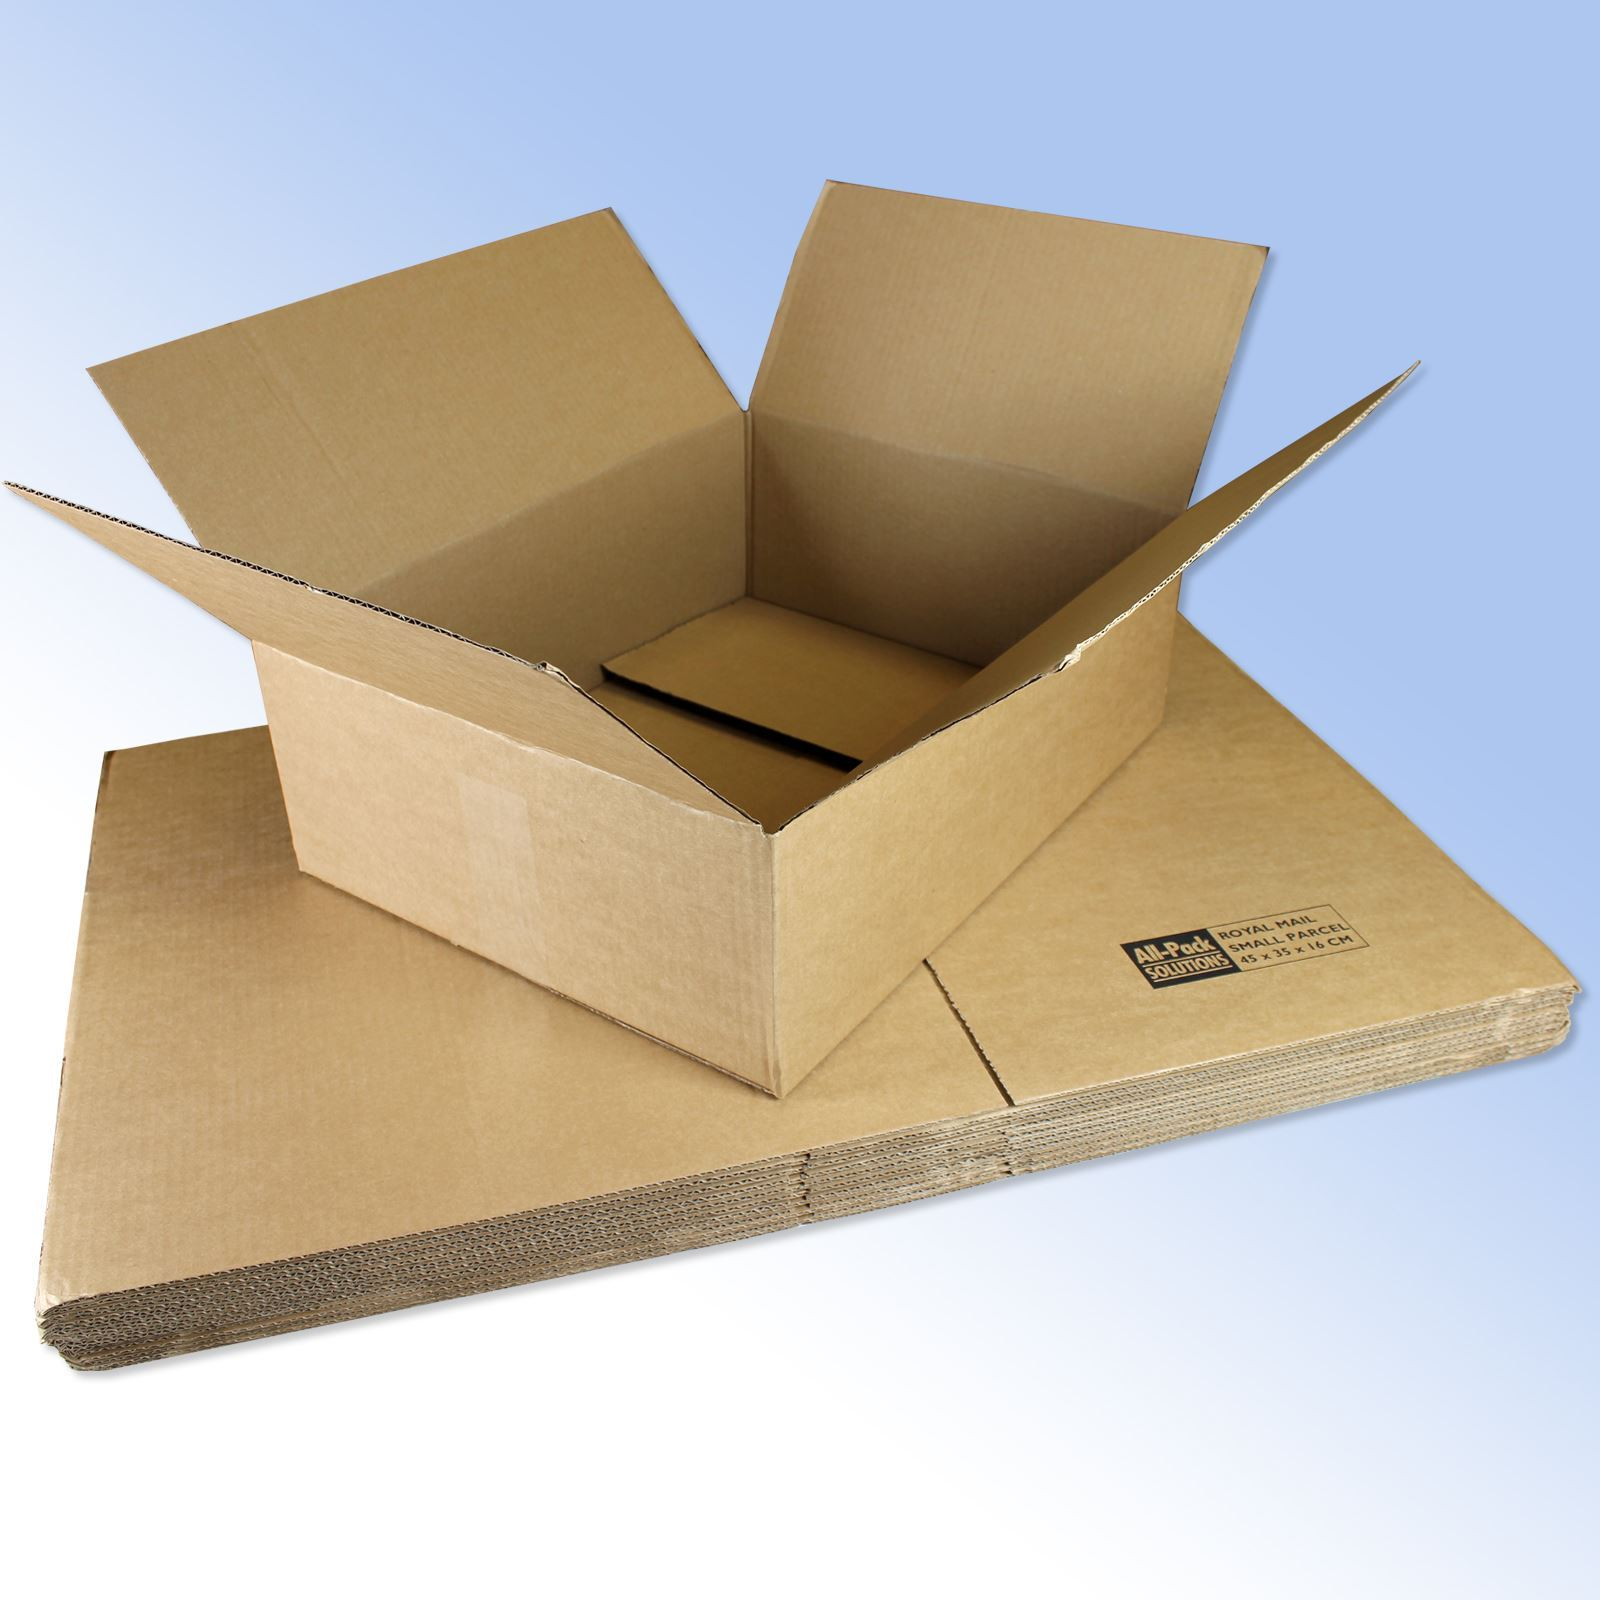 Royal Mail Redelivery: Arrange Online February 6, February 6, rmt Royal Mail Redelivery or Royal Mail Redirection is one of the best service provided to the customers which is an online parcel redelivery facility.